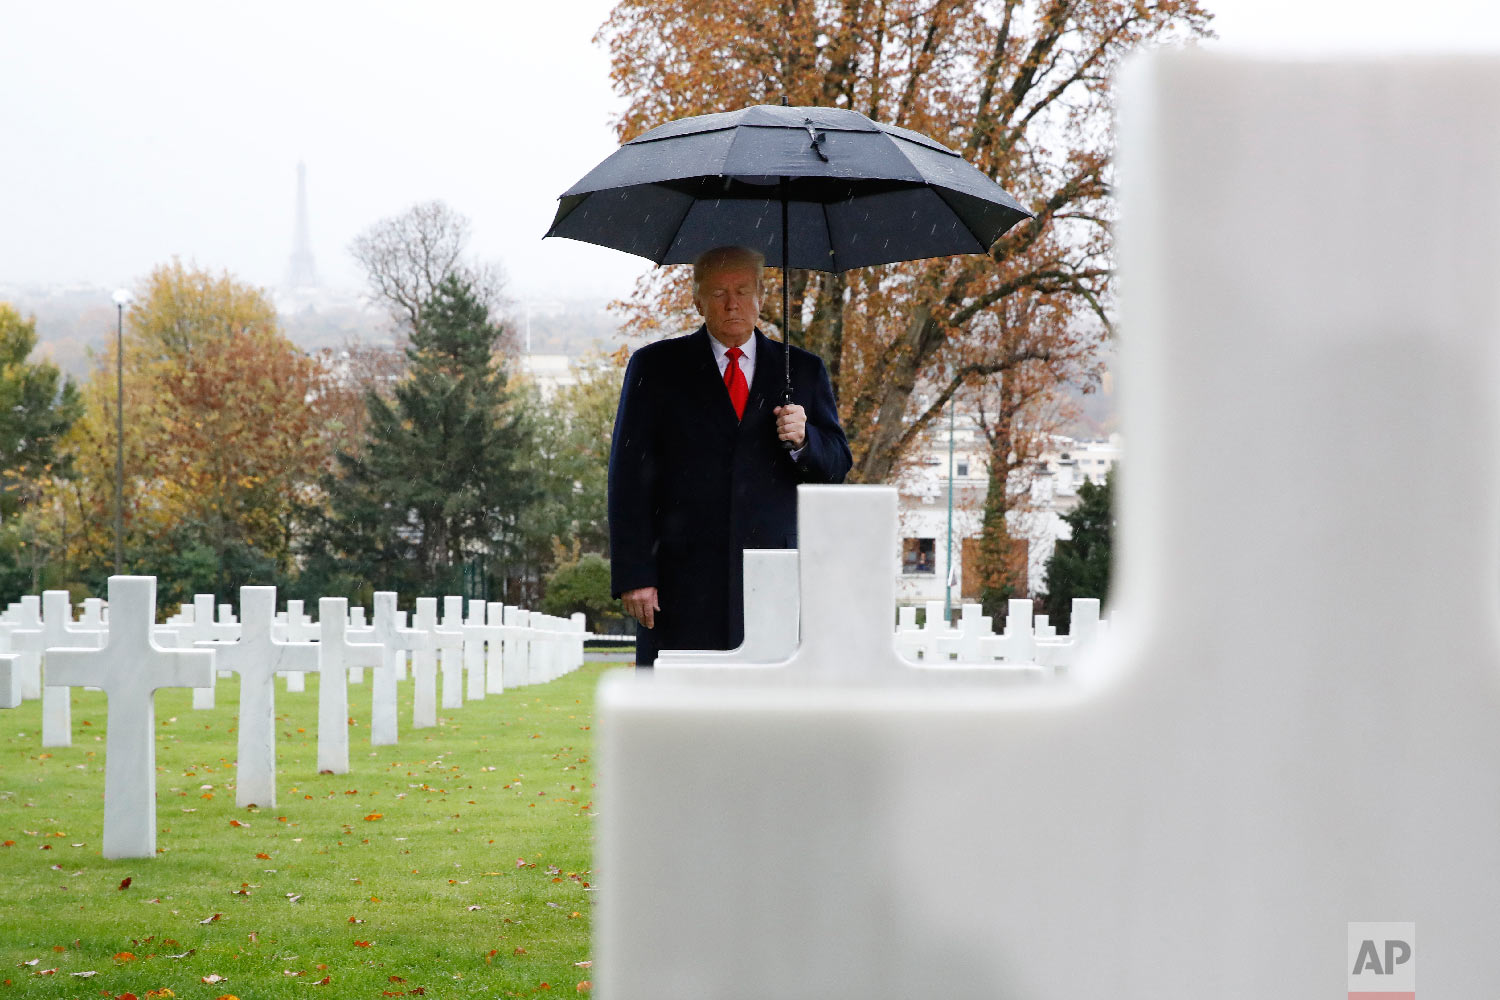 President Donald Trump stands amongst the headstones during an American Commemoration Ceremony Nov. 11, 2018, at Suresnes American Cemetery near Paris. (AP Photo/Jacquelyn Martin)